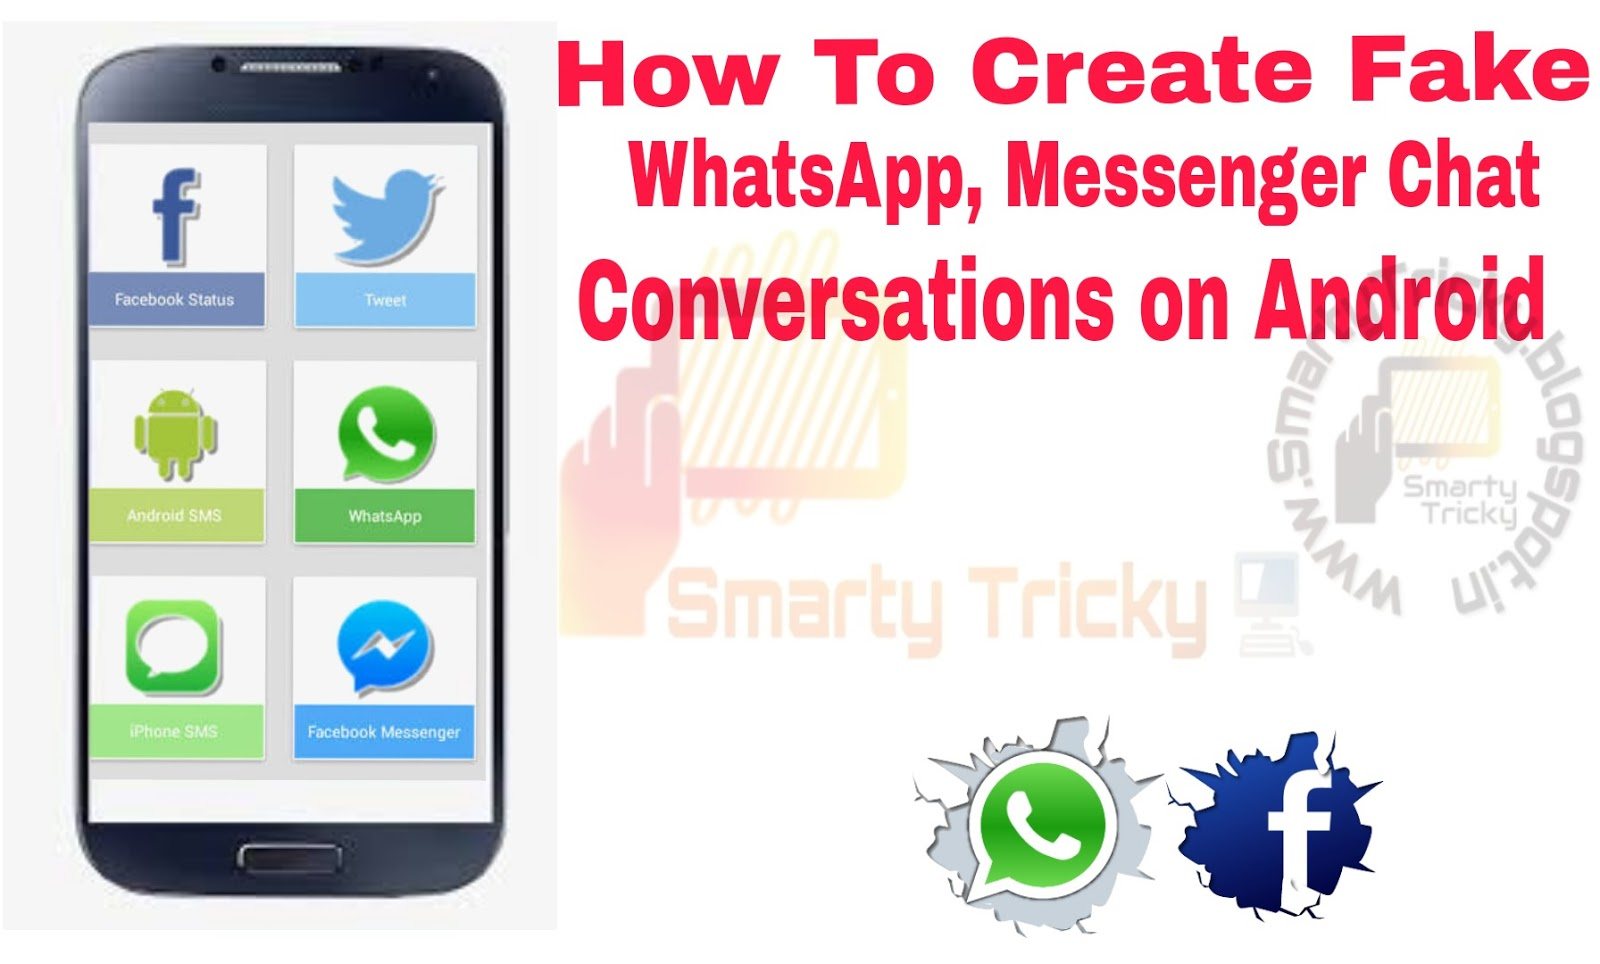 How To Make A Fake Message On Whatsapp Fake WhatsApp Chat